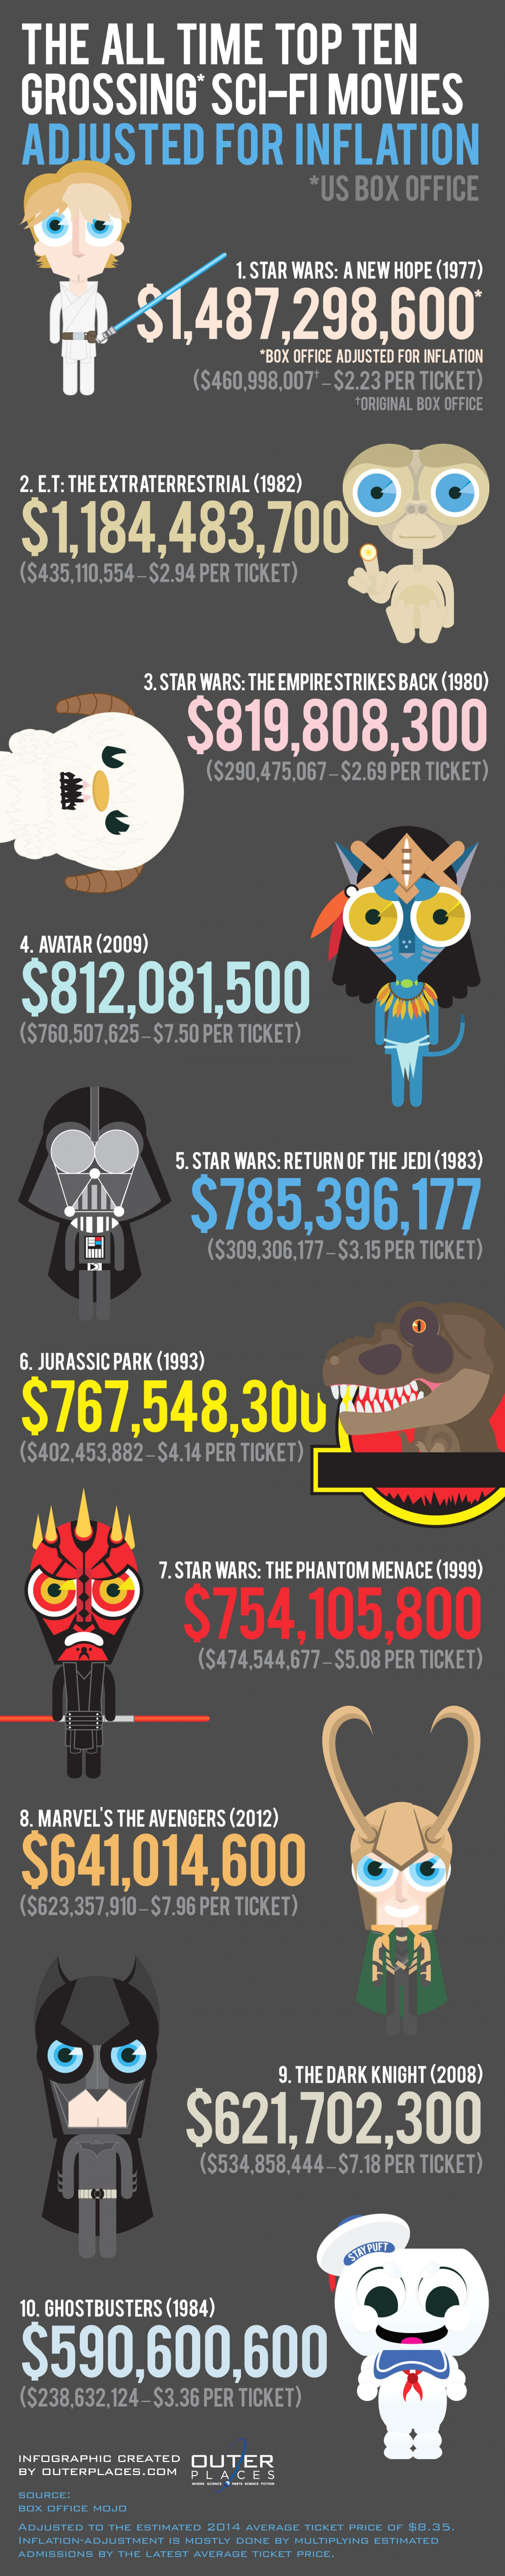 14 top-grossing-scifi-movies--adjusted-for-inflation_52f53c07d3082_w1500